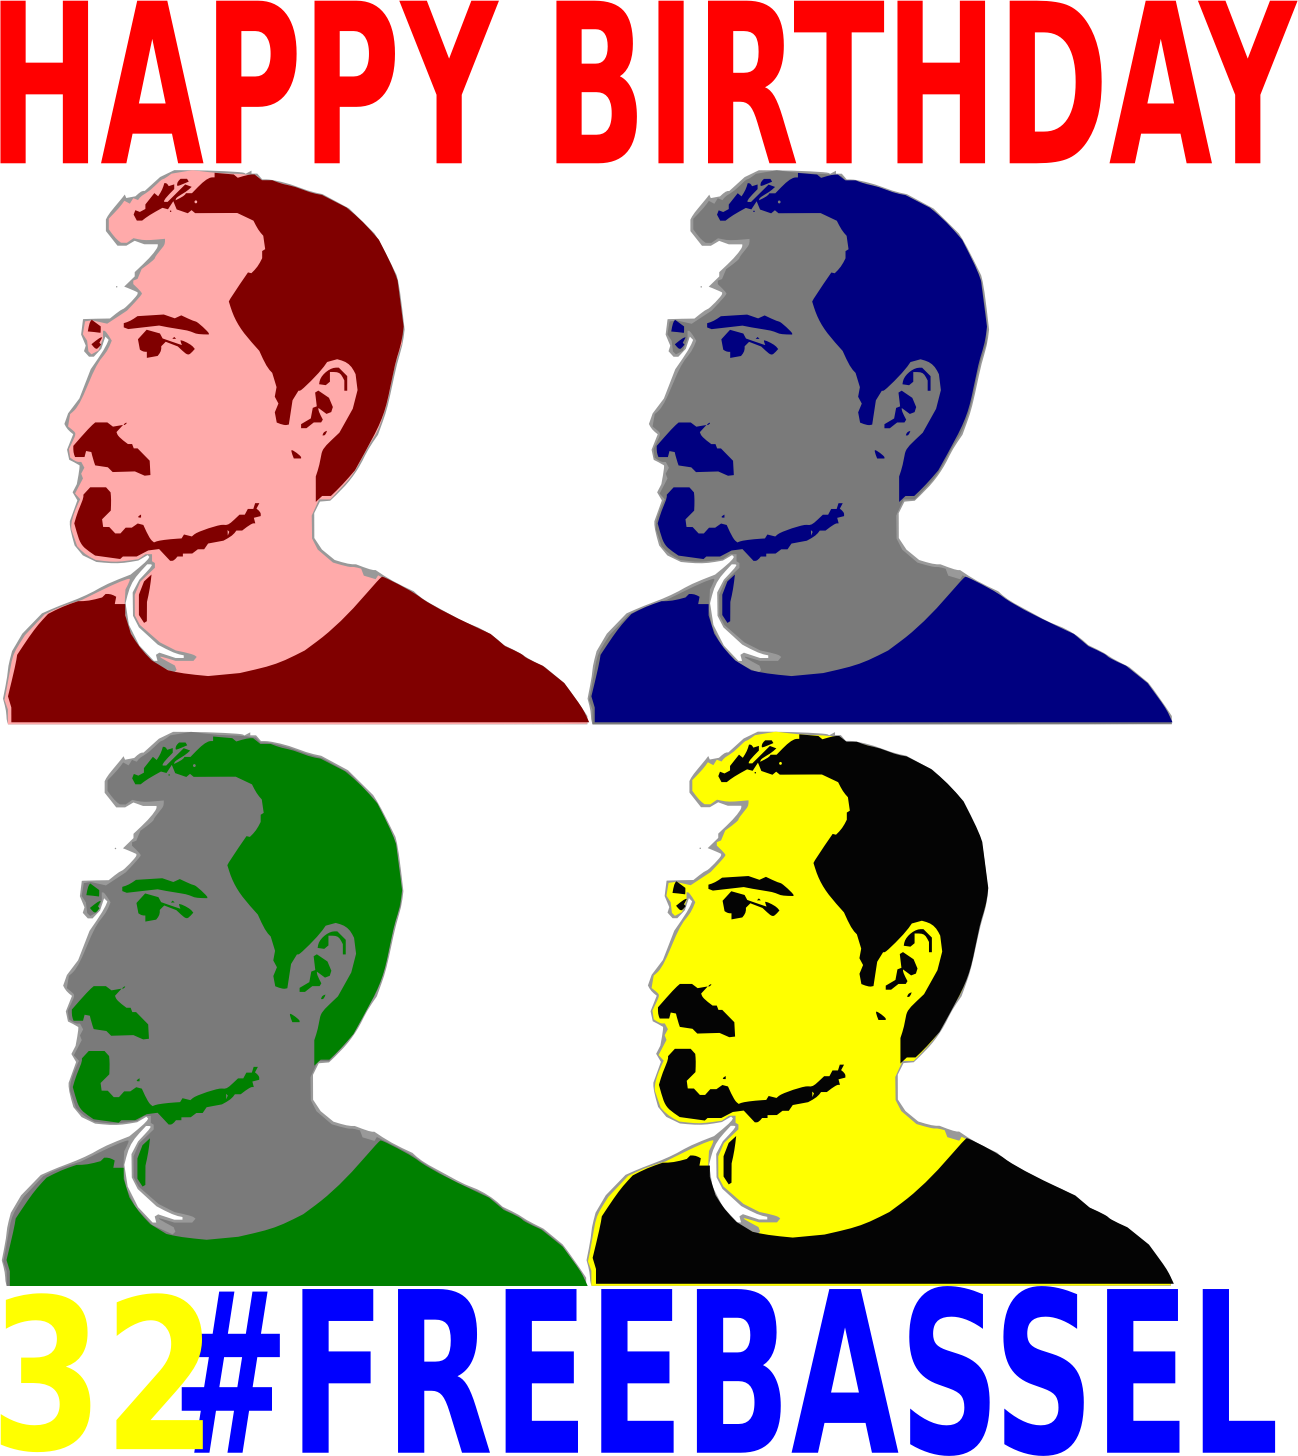 32 Birthday FREEBASSEL  by jykhui